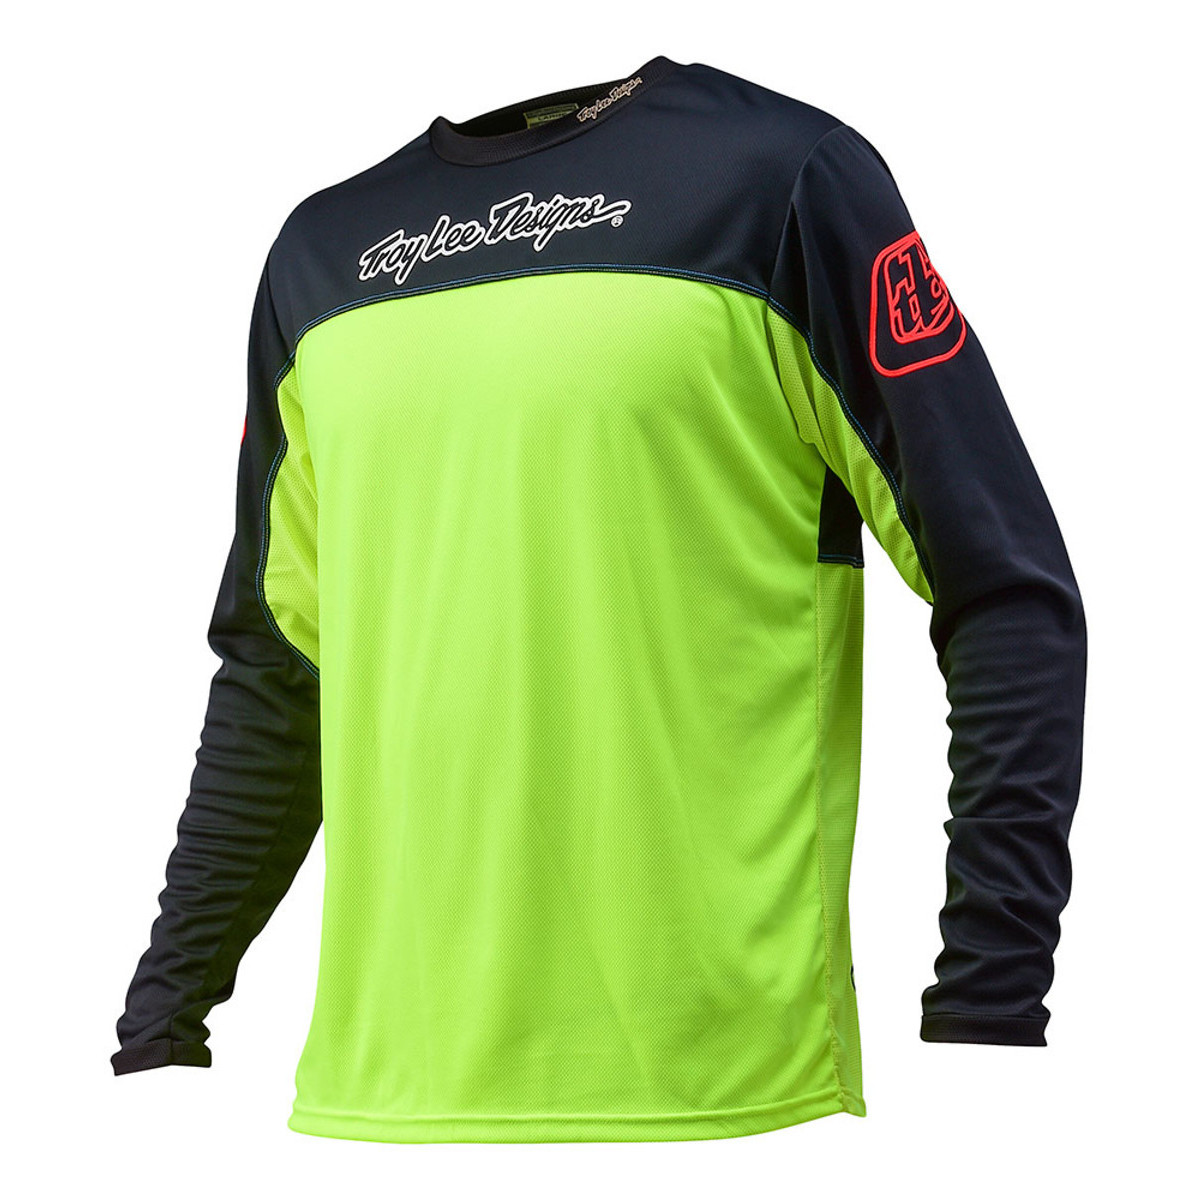 Troy Lee Designs Sprint Jersey - Reviews e9719dfb7